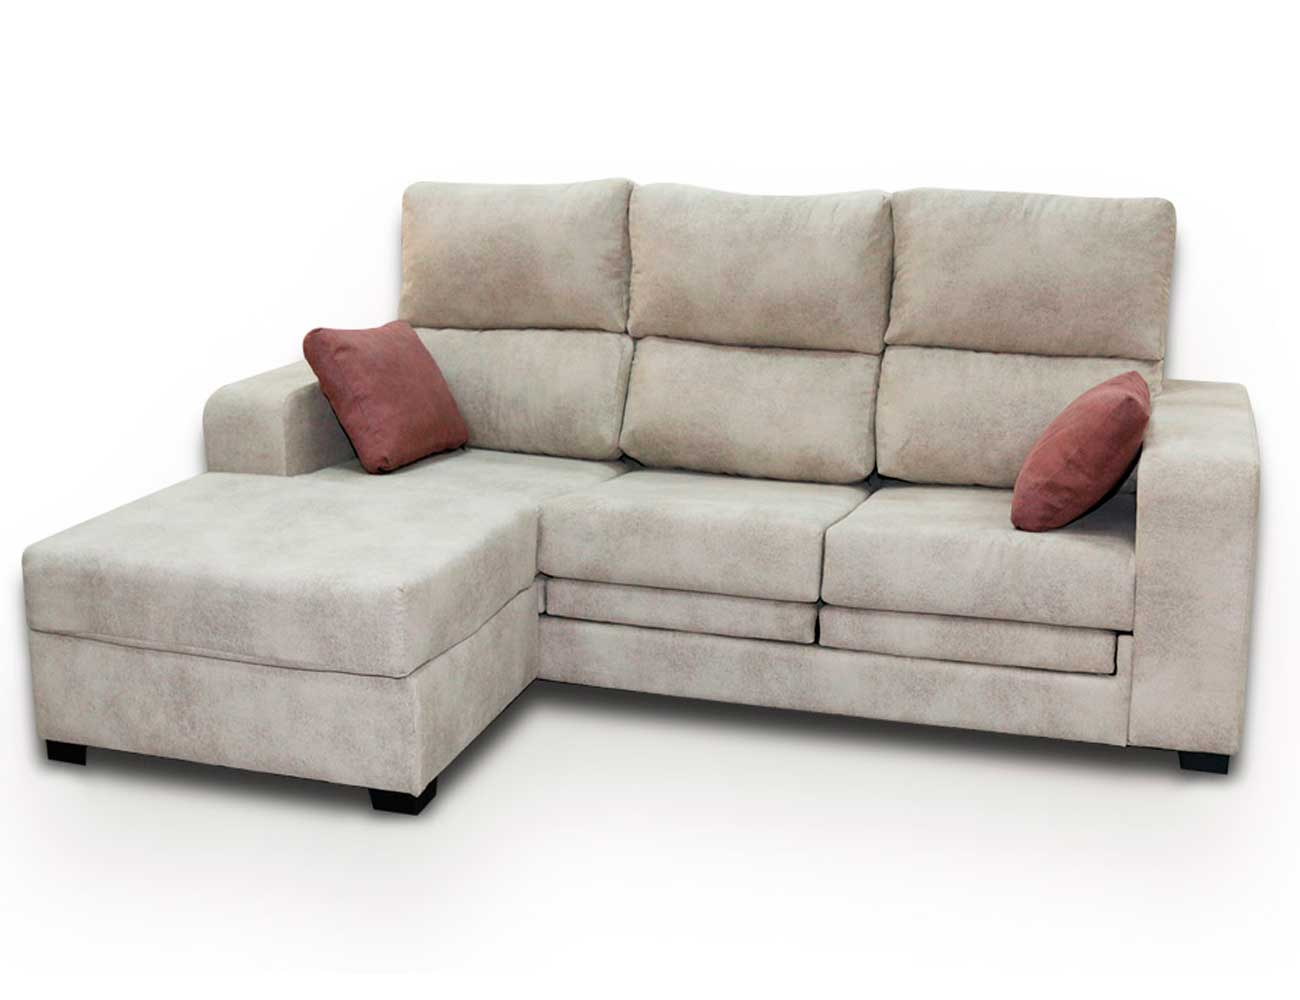 Sofa 3p puff reversible1